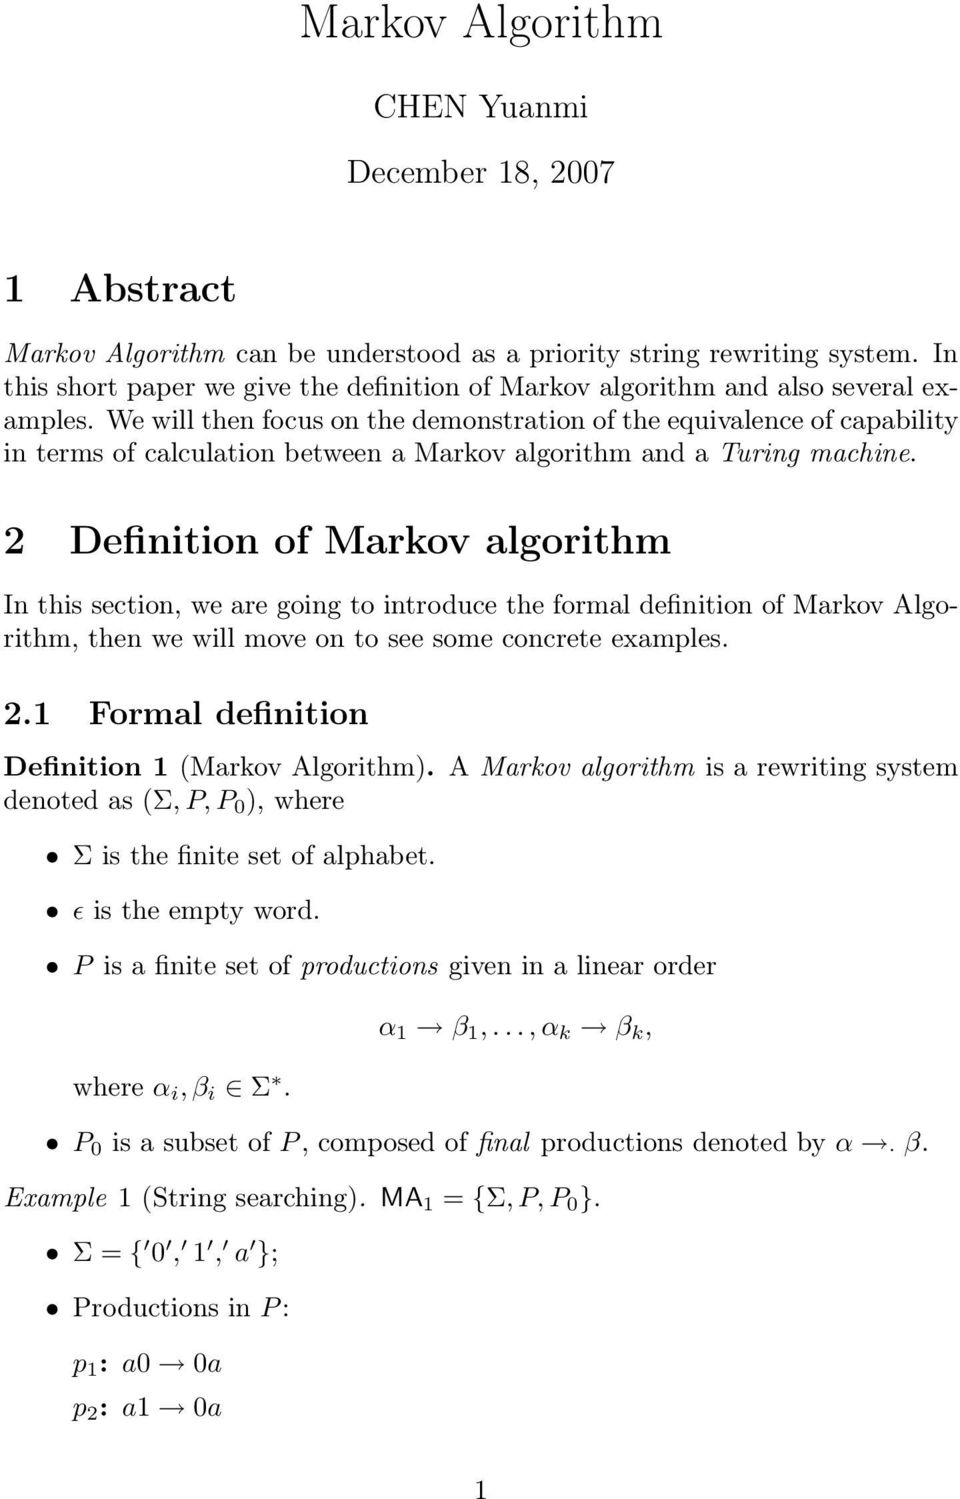 We will then focus on the demonstration of the equivalence of capability in terms of calculation between a Markov algorithm and a Turing machine.